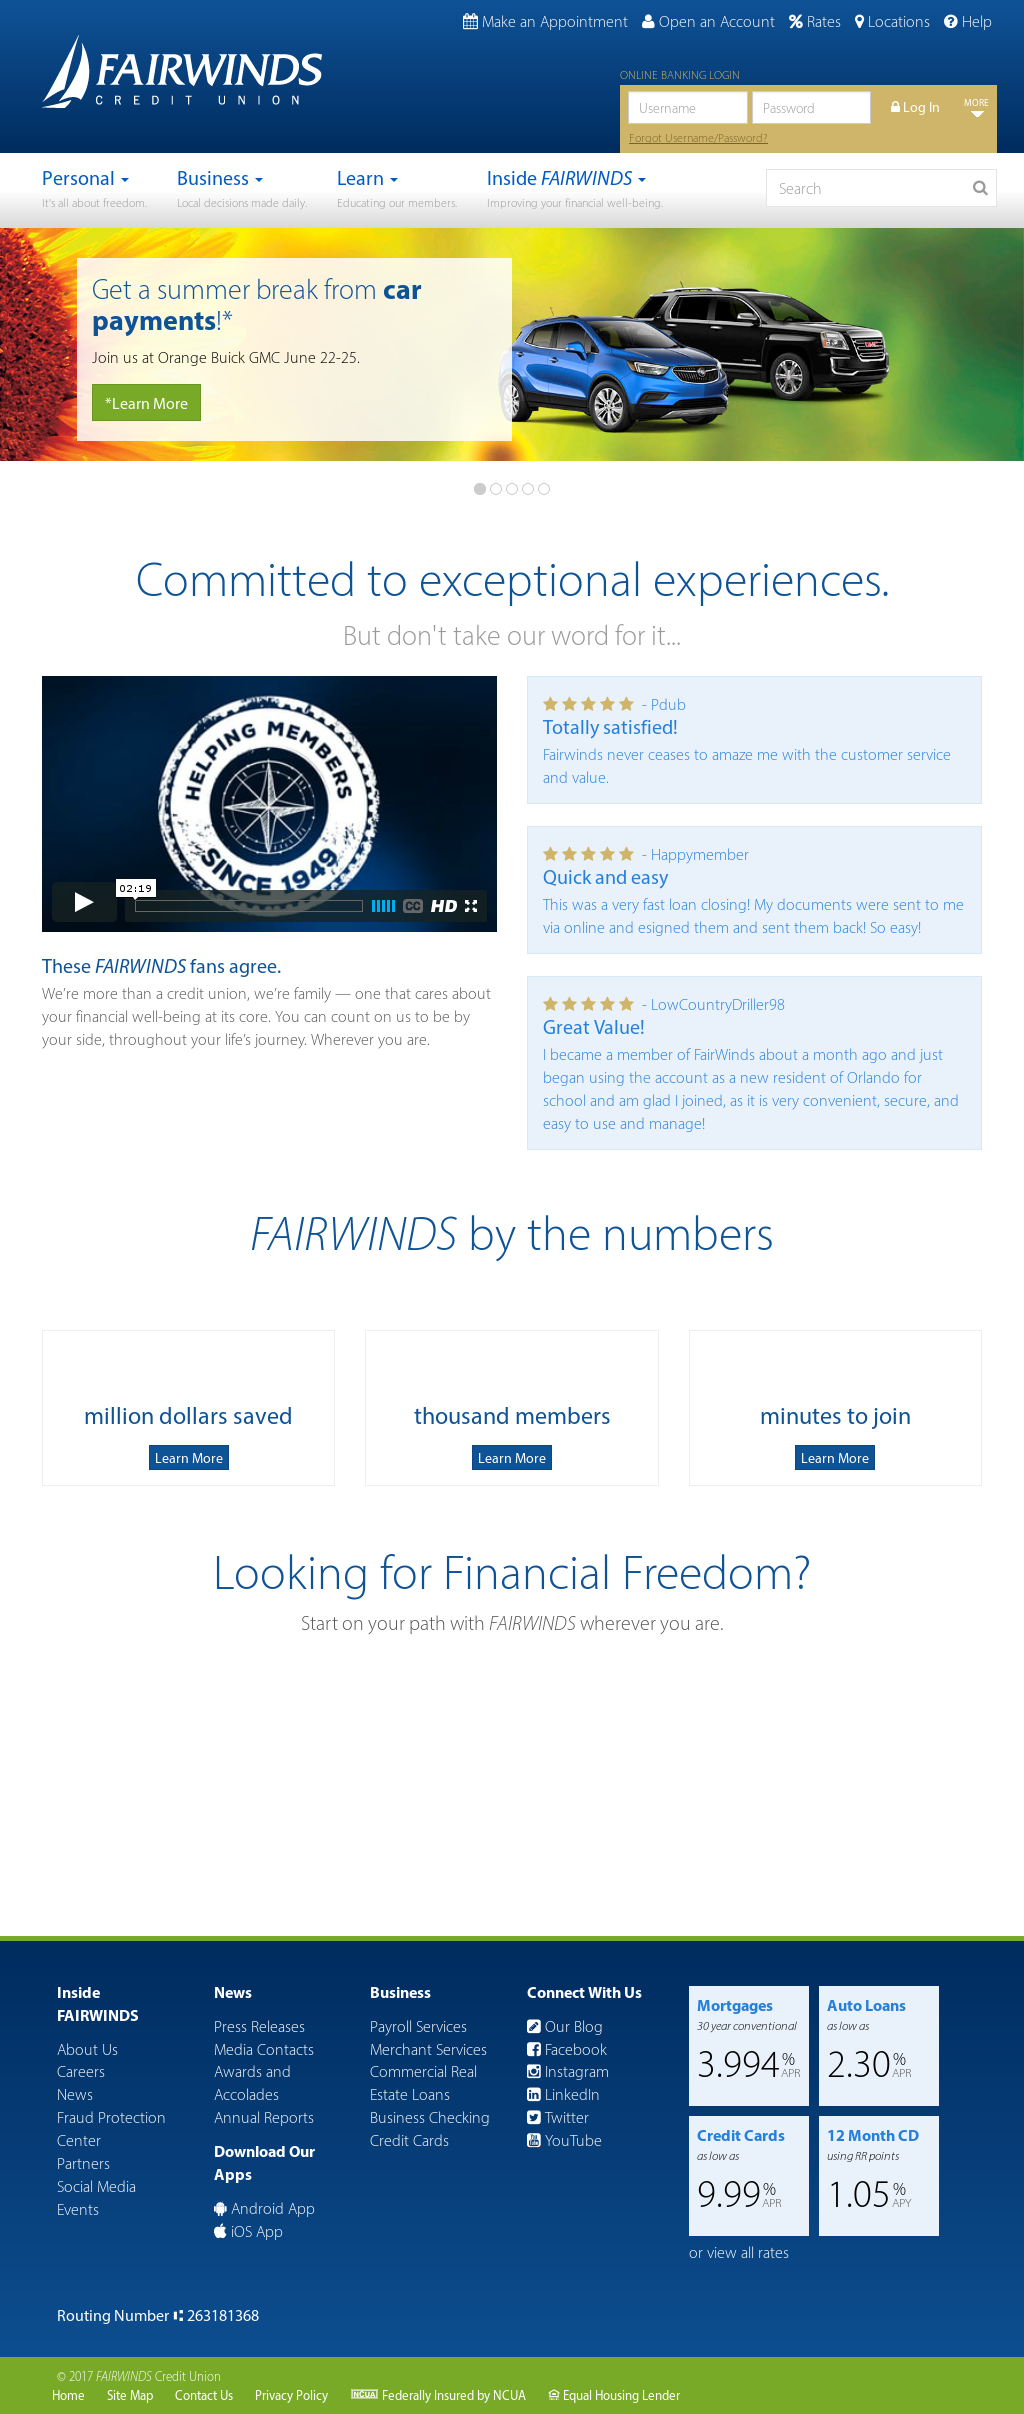 Fairwinds Customer Service >> Fairwinds Credit Union Competitors Revenue And Employees